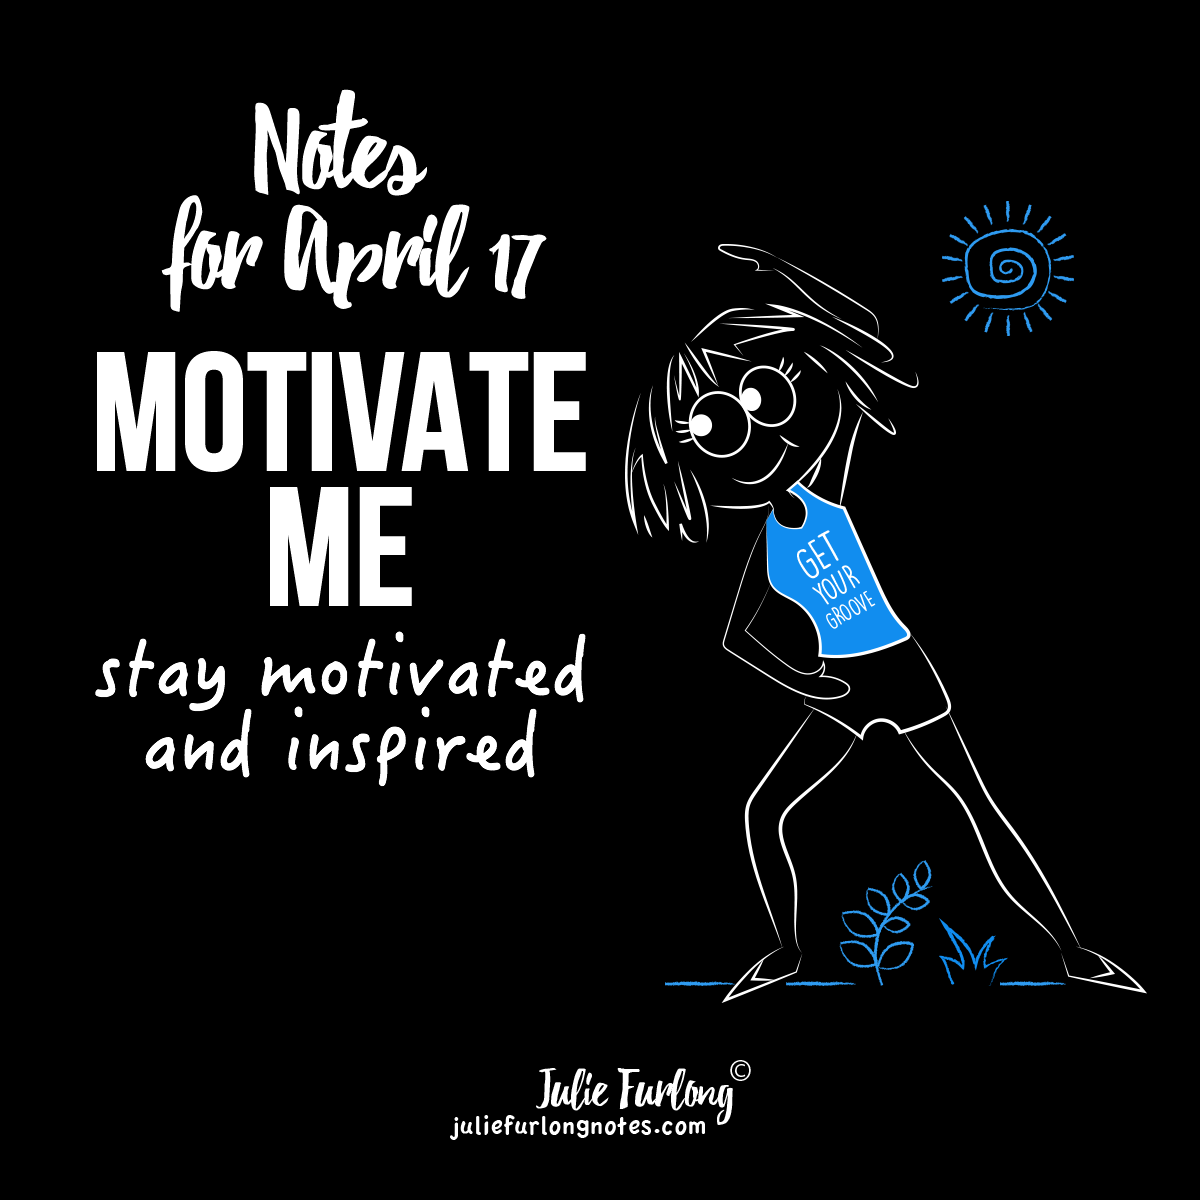 Julie-furlong-notes-motivate-me